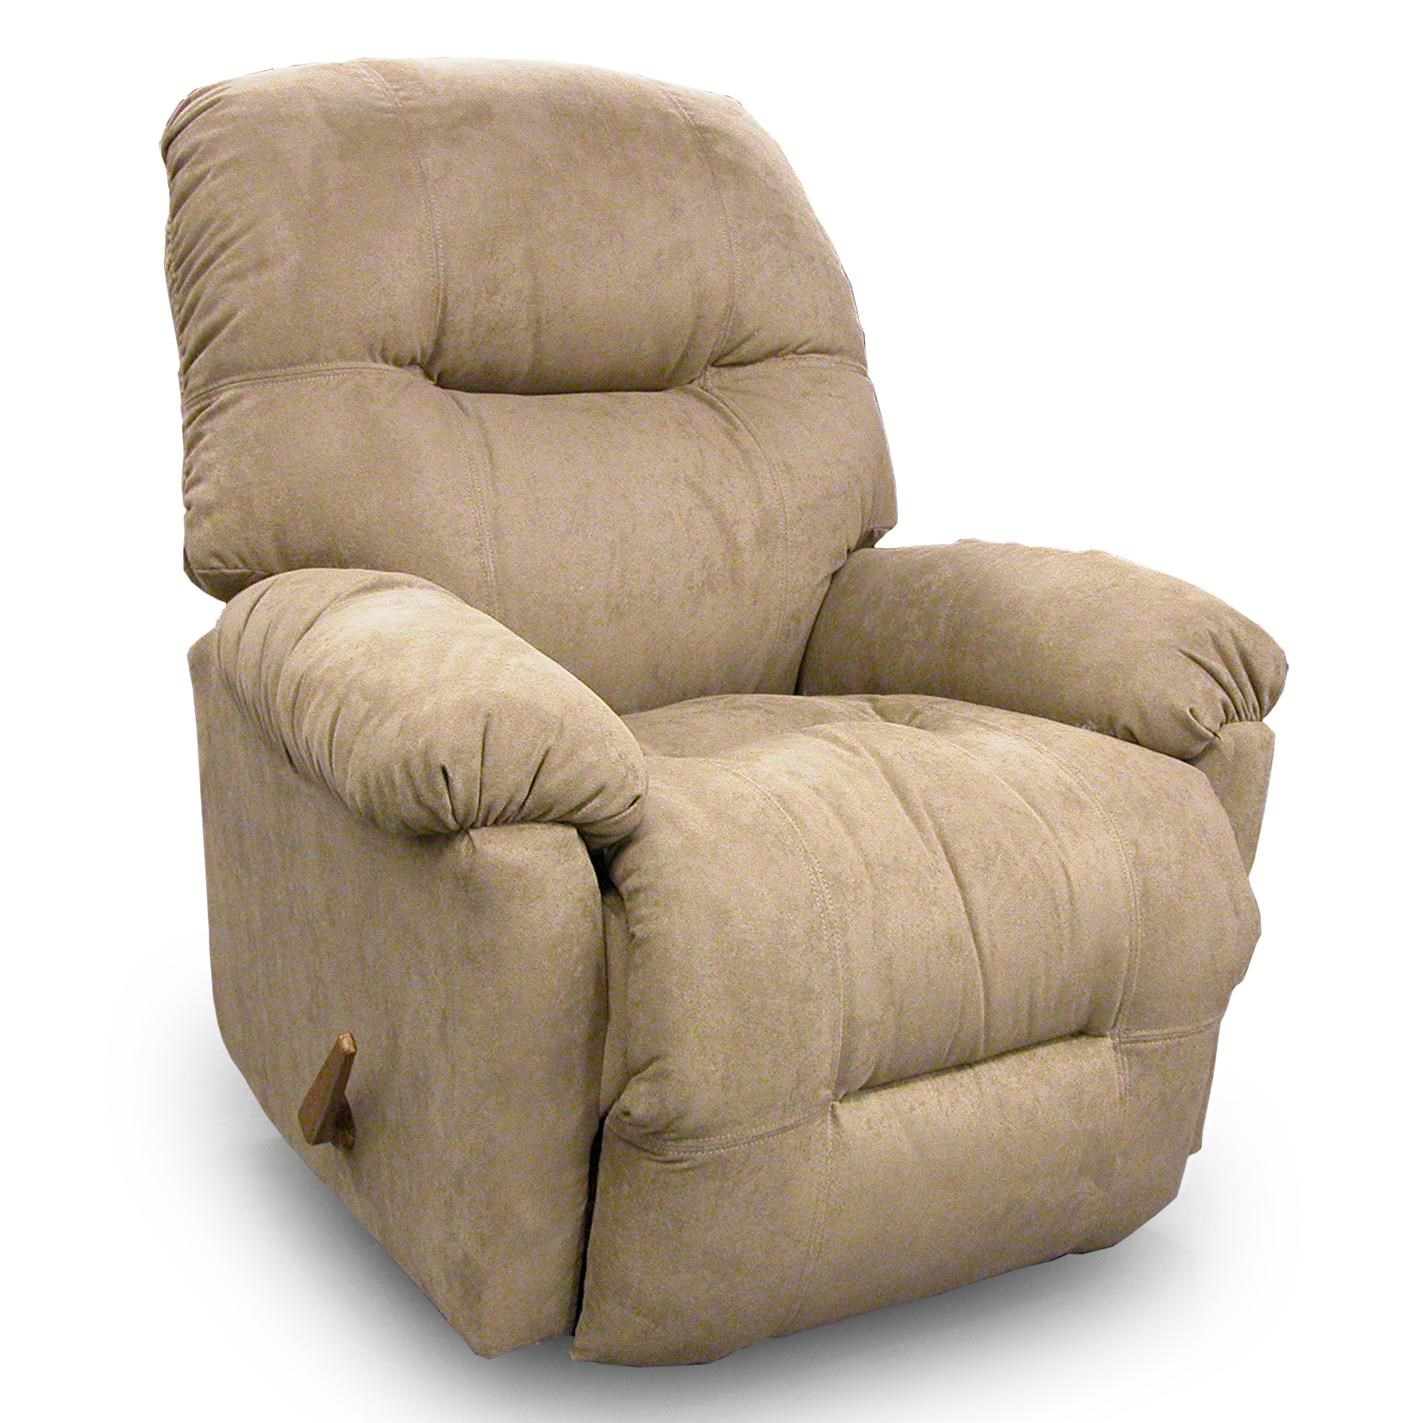 Best Home Furnishings Recliners - Petite 9MW11-1 Wynette Power Lift Reclining Chair  sc 1 st  Baeru0027s Furniture : best recliner chair - islam-shia.org